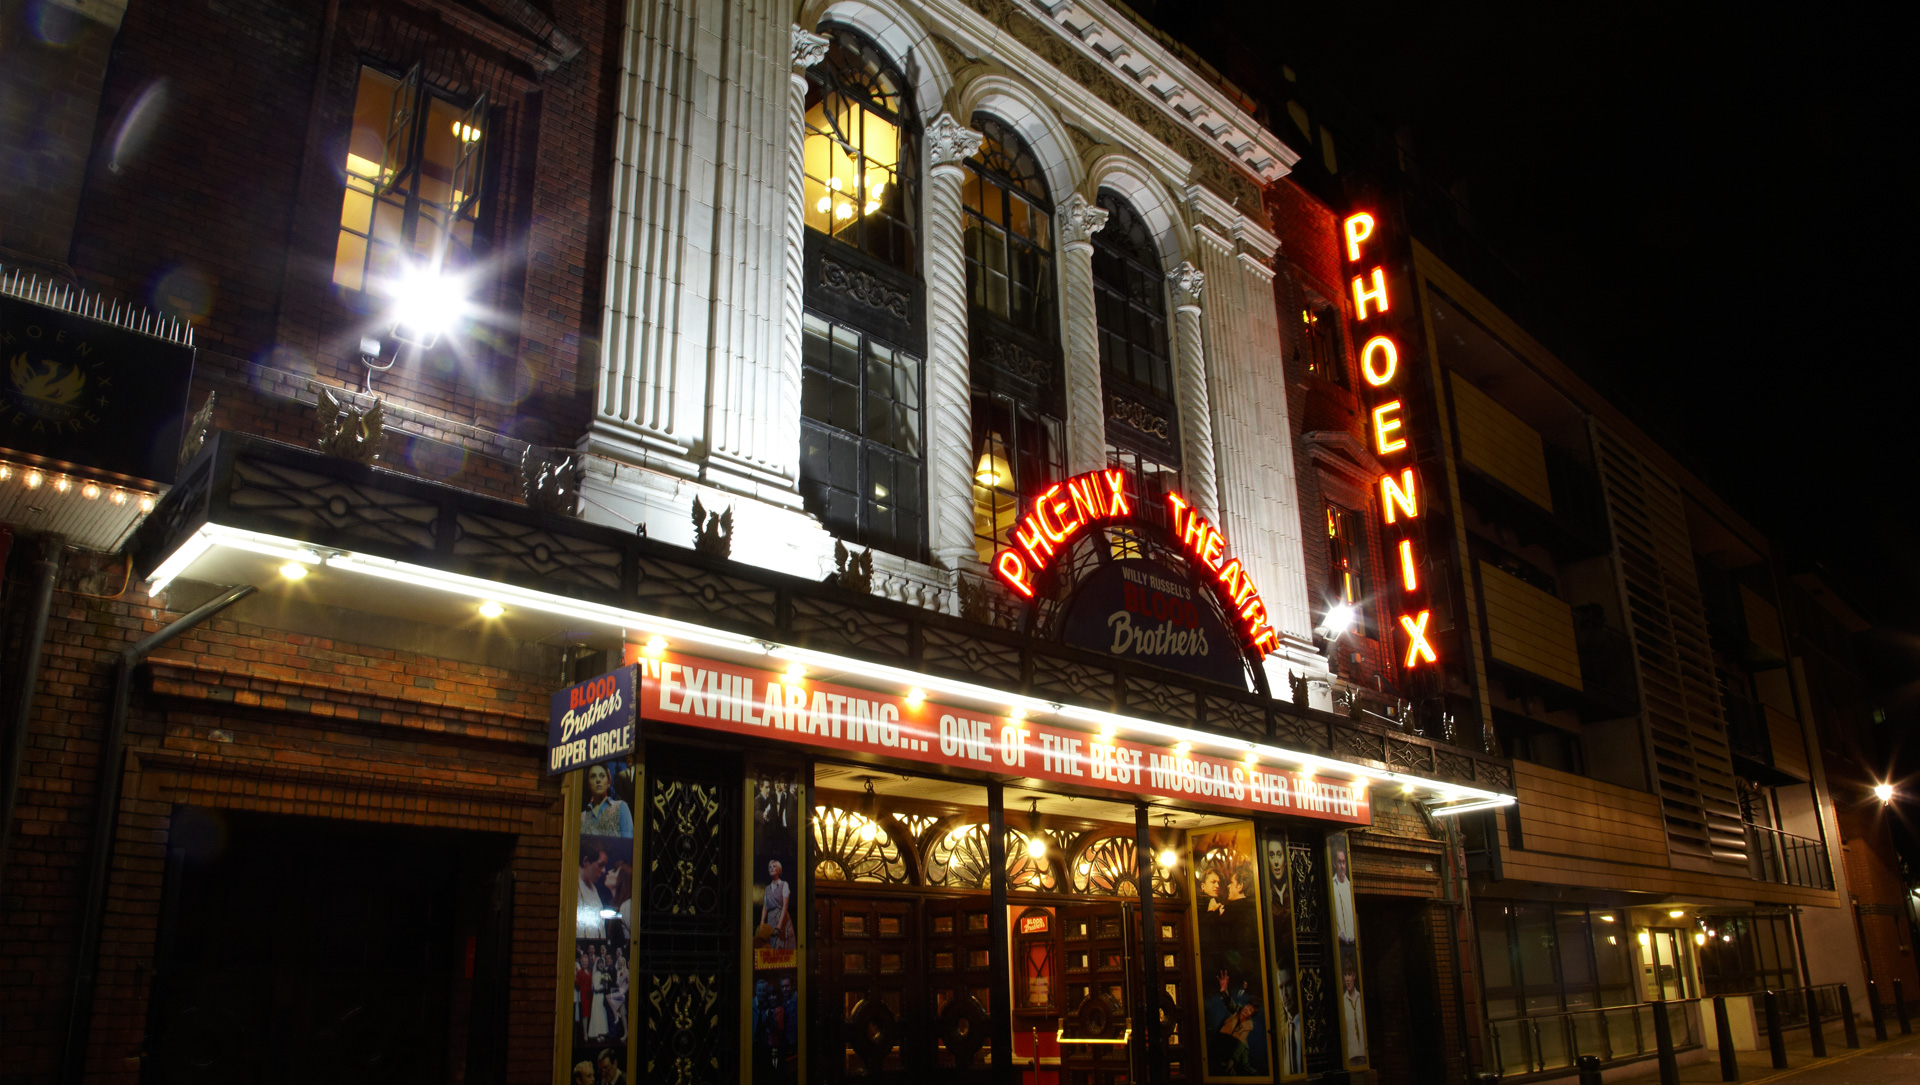 External image of the Phoenix Theatre